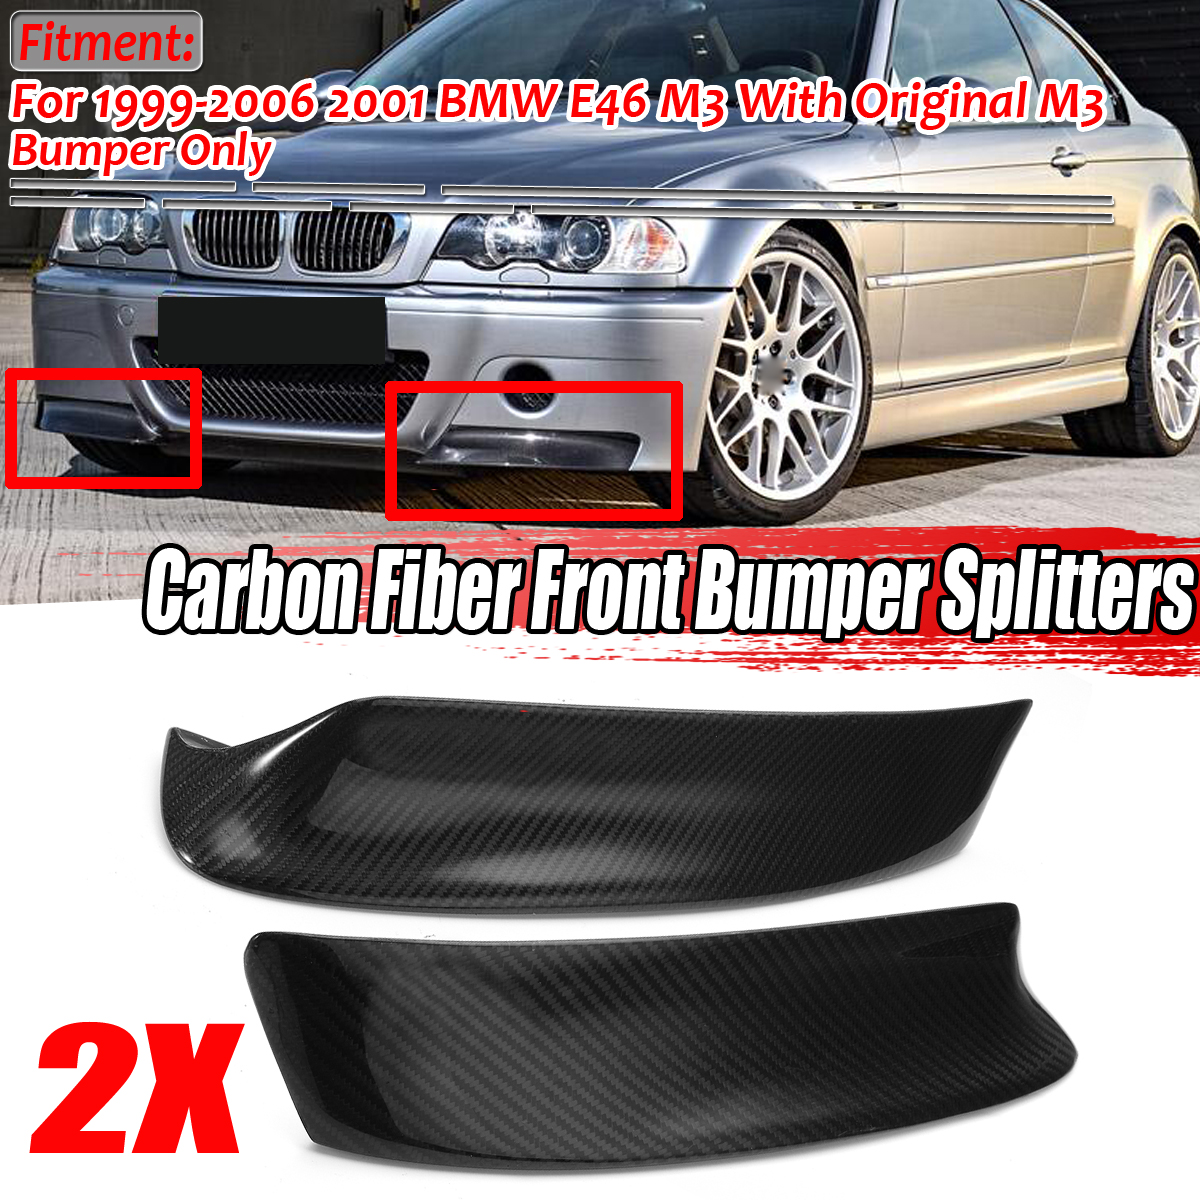 1Pair Racing Carbon Fiber Style Front Bumper Lip Diffuser Splitters Canard Splitter Air Vent Cover Trim for BMW E46 M3 1999-2006 image